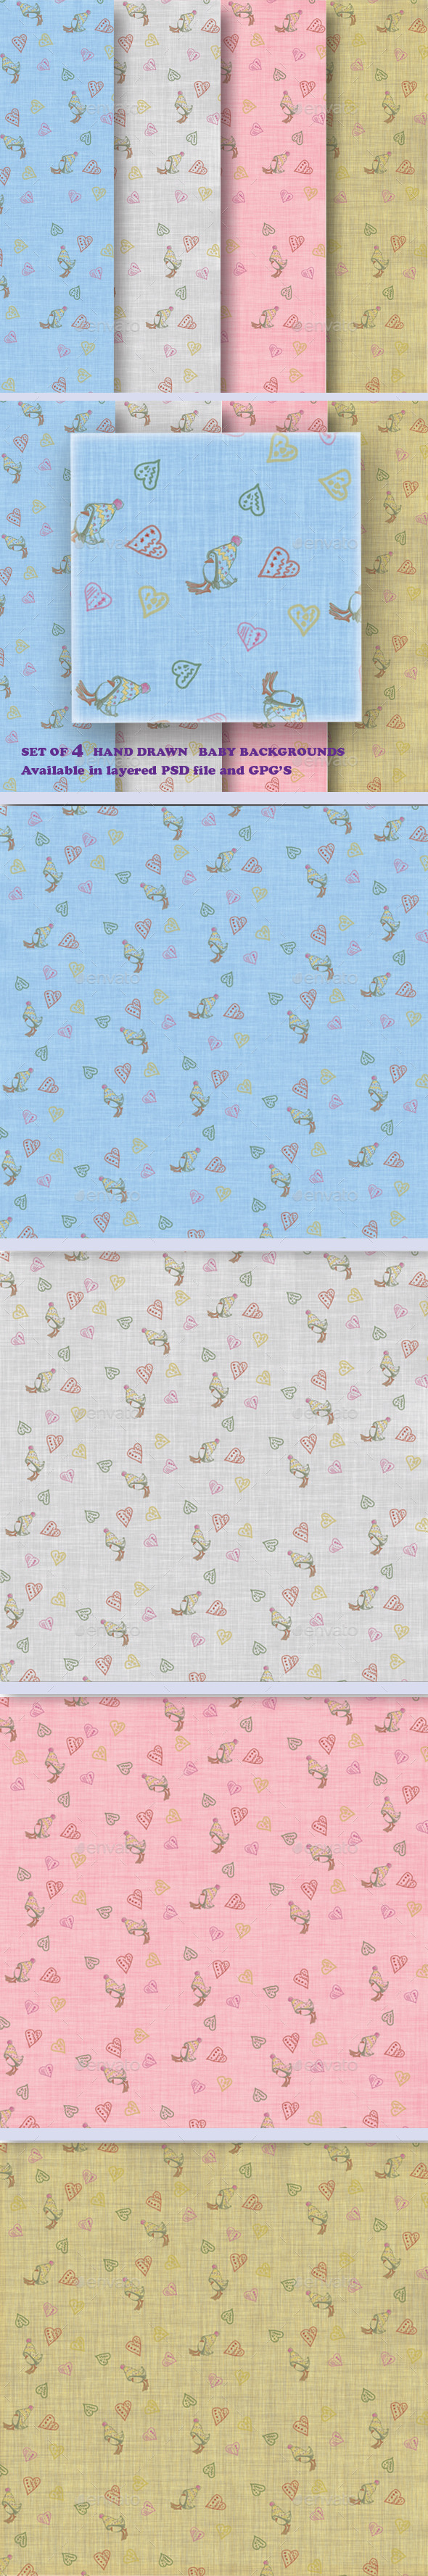 GraphicRiver Hand Draw Baby Backgrounds 11557110